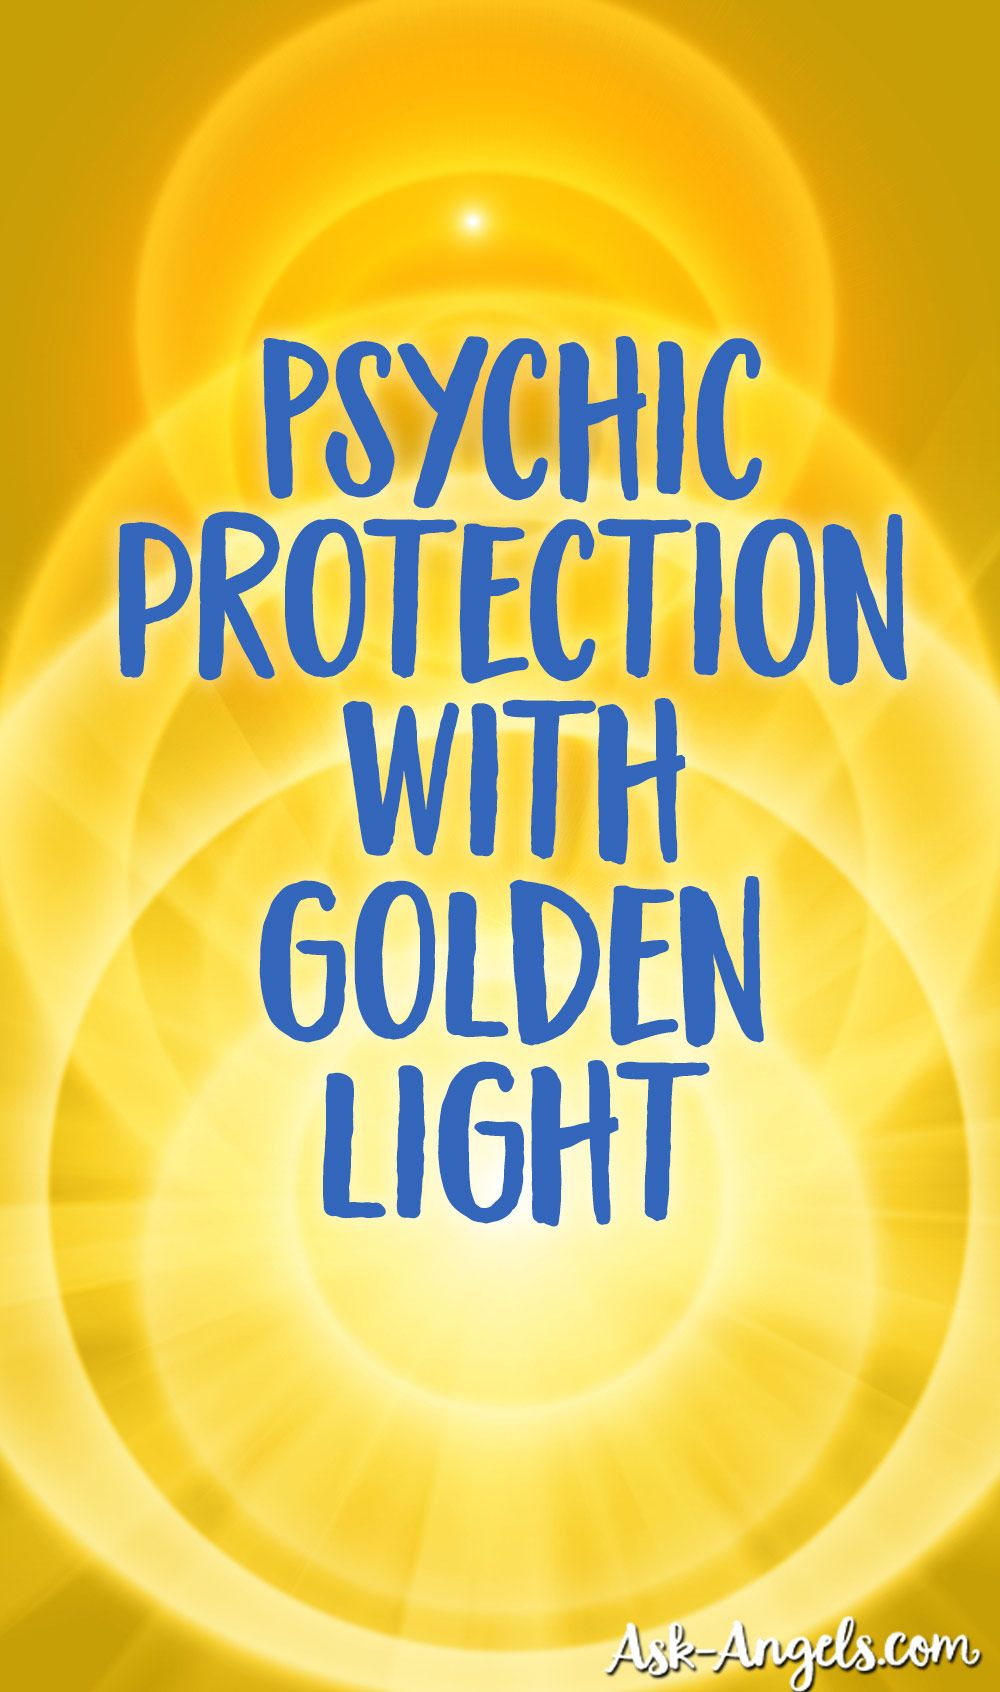 Discussion on this topic: How to Have Psychic Protection, how-to-have-psychic-protection/